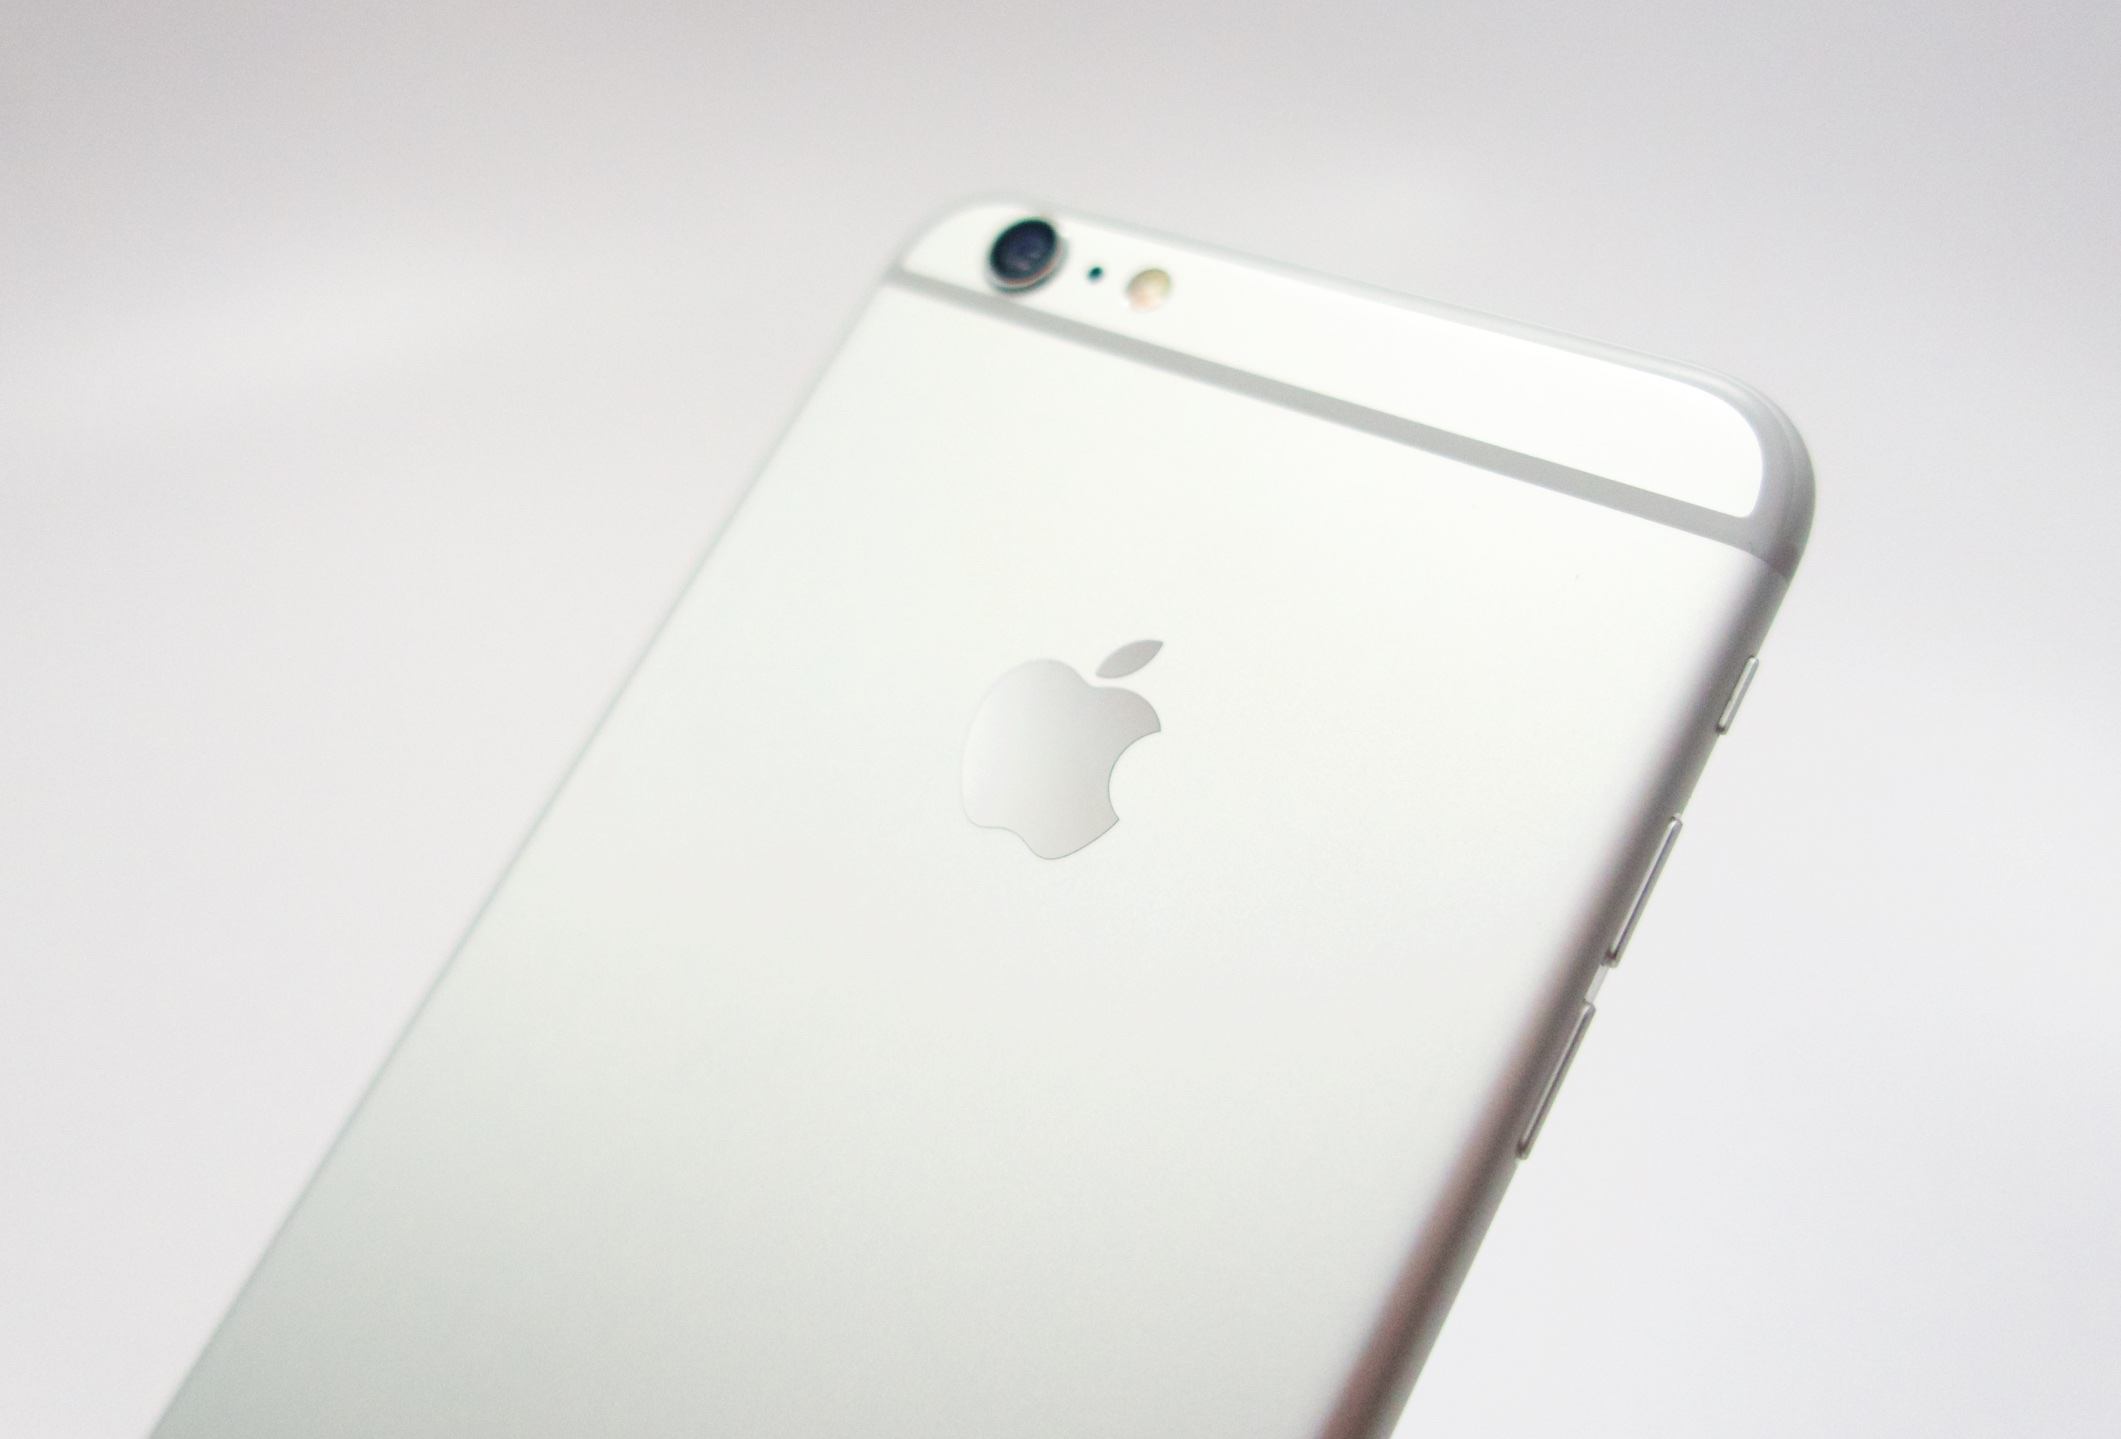 25 major problems with the iPhone 6 and what to do about them